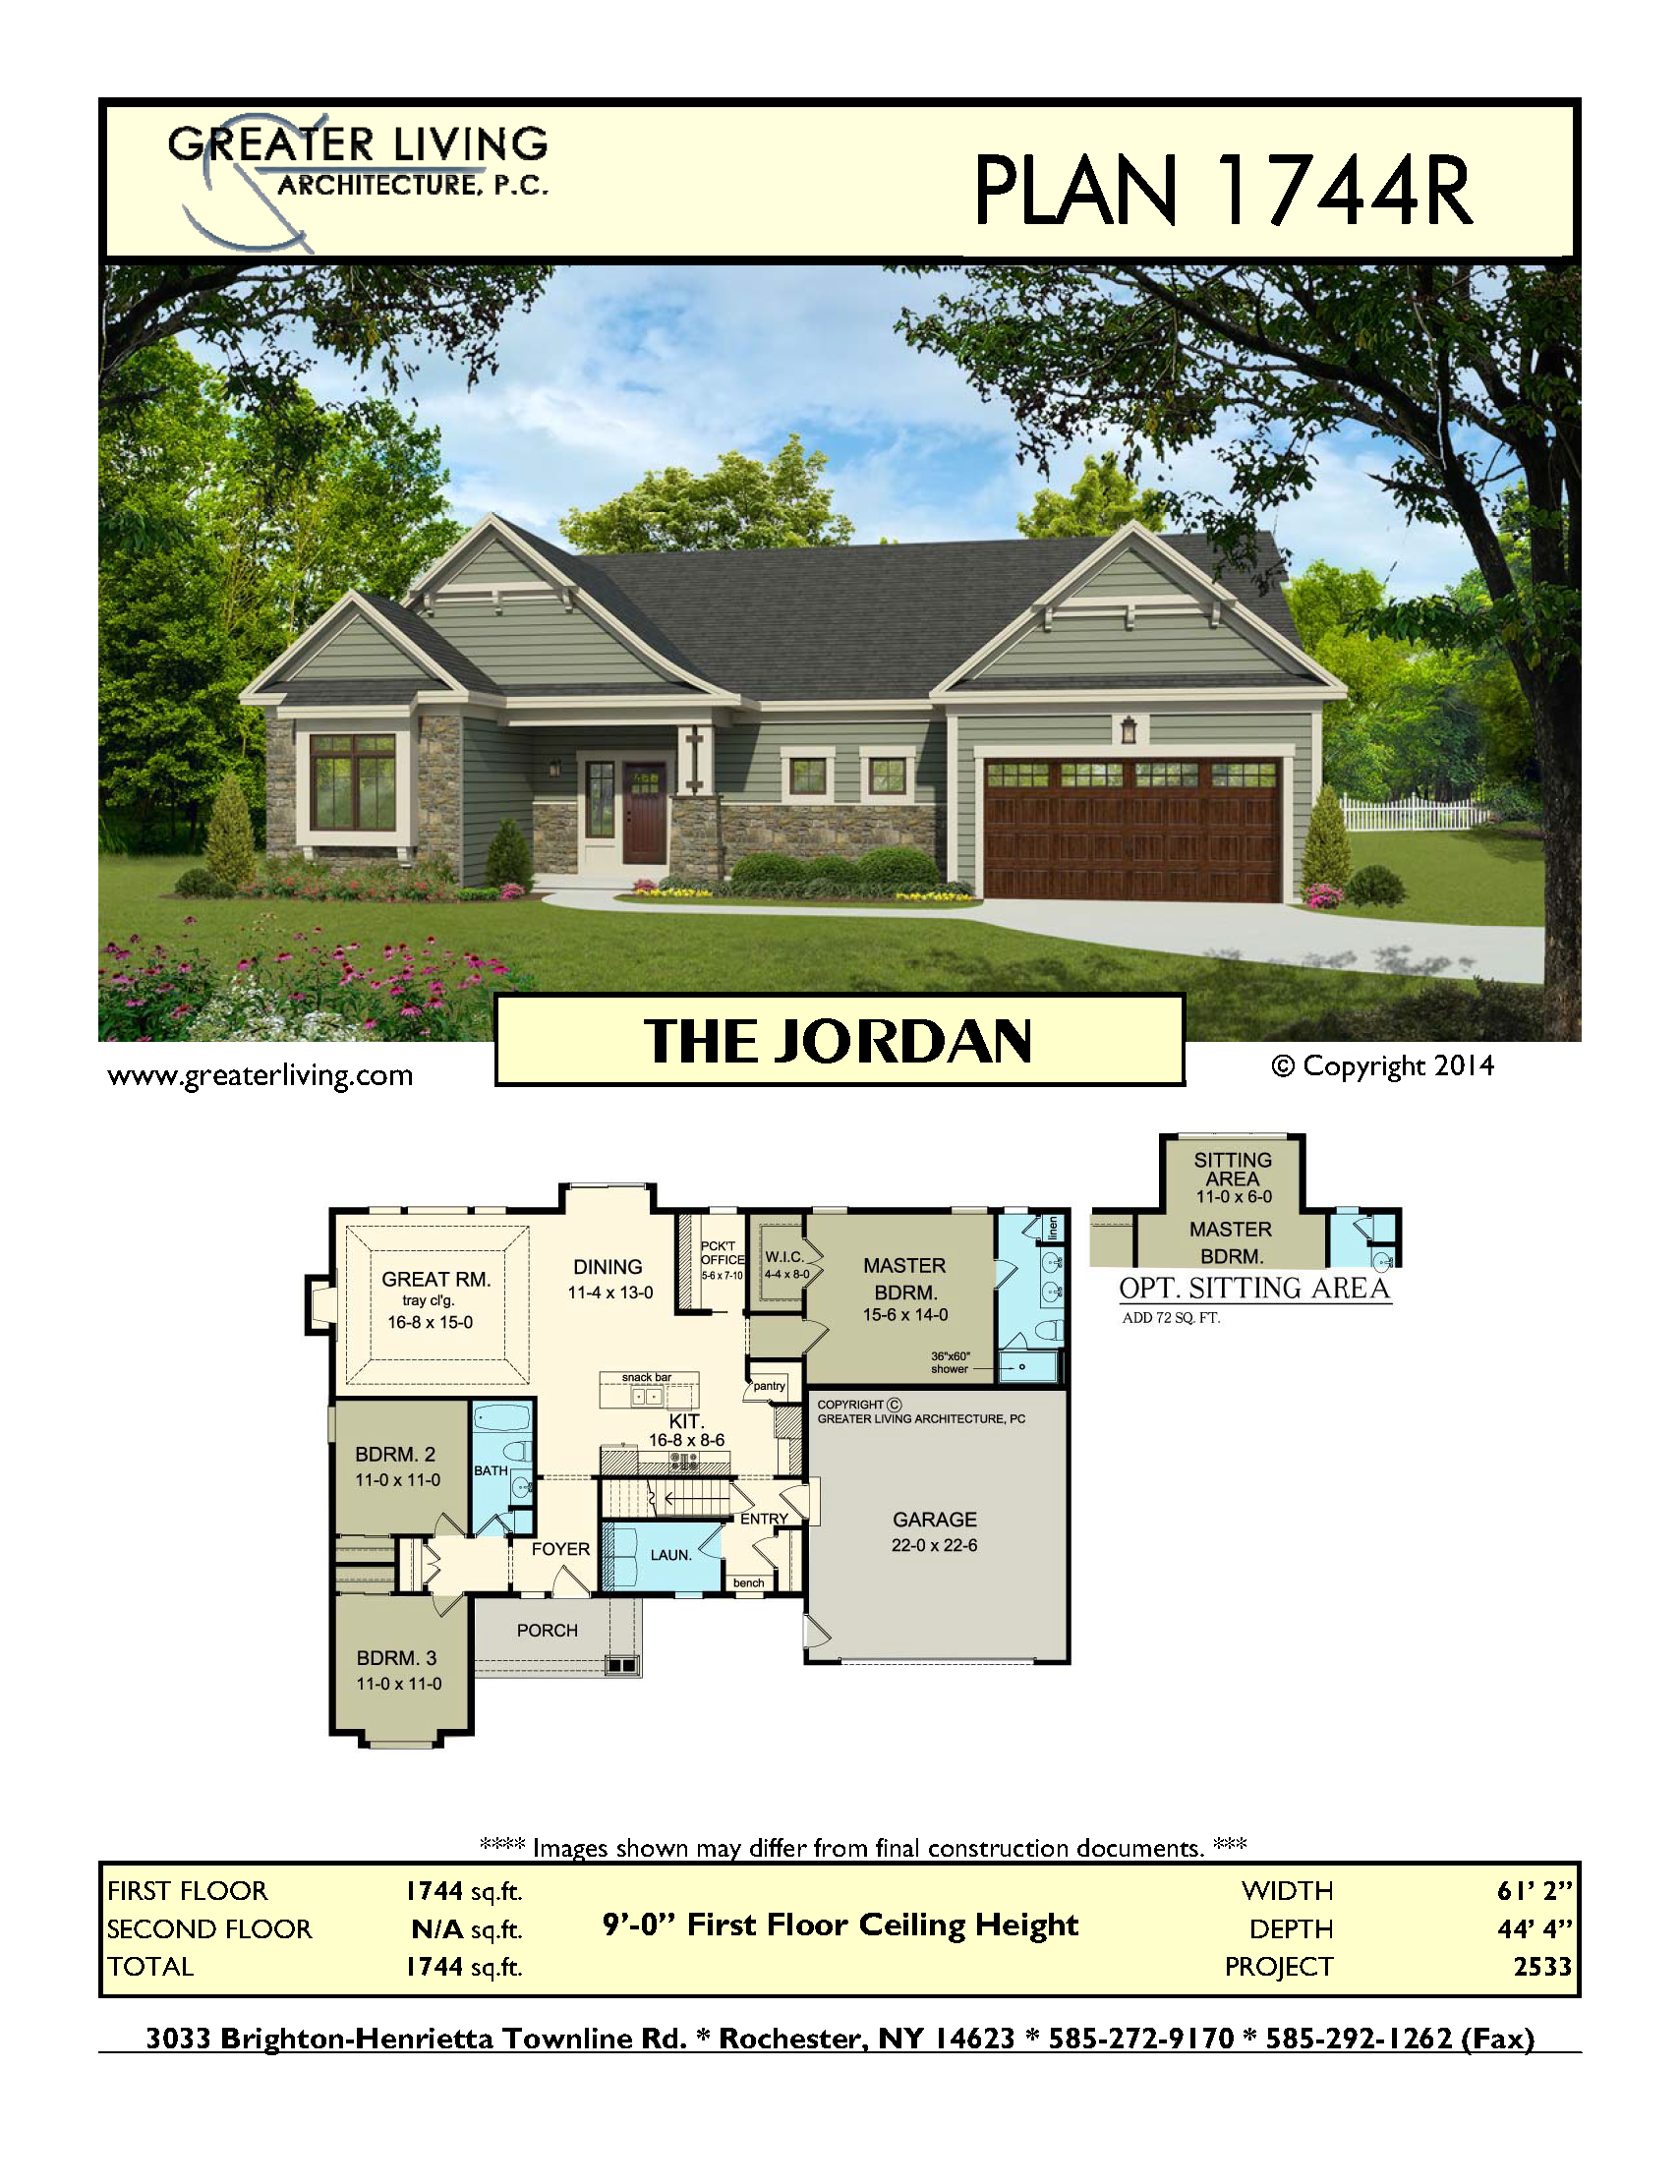 Plan 1744R: THE JORDAN - House Plans Ranch House Plan - Greater ...